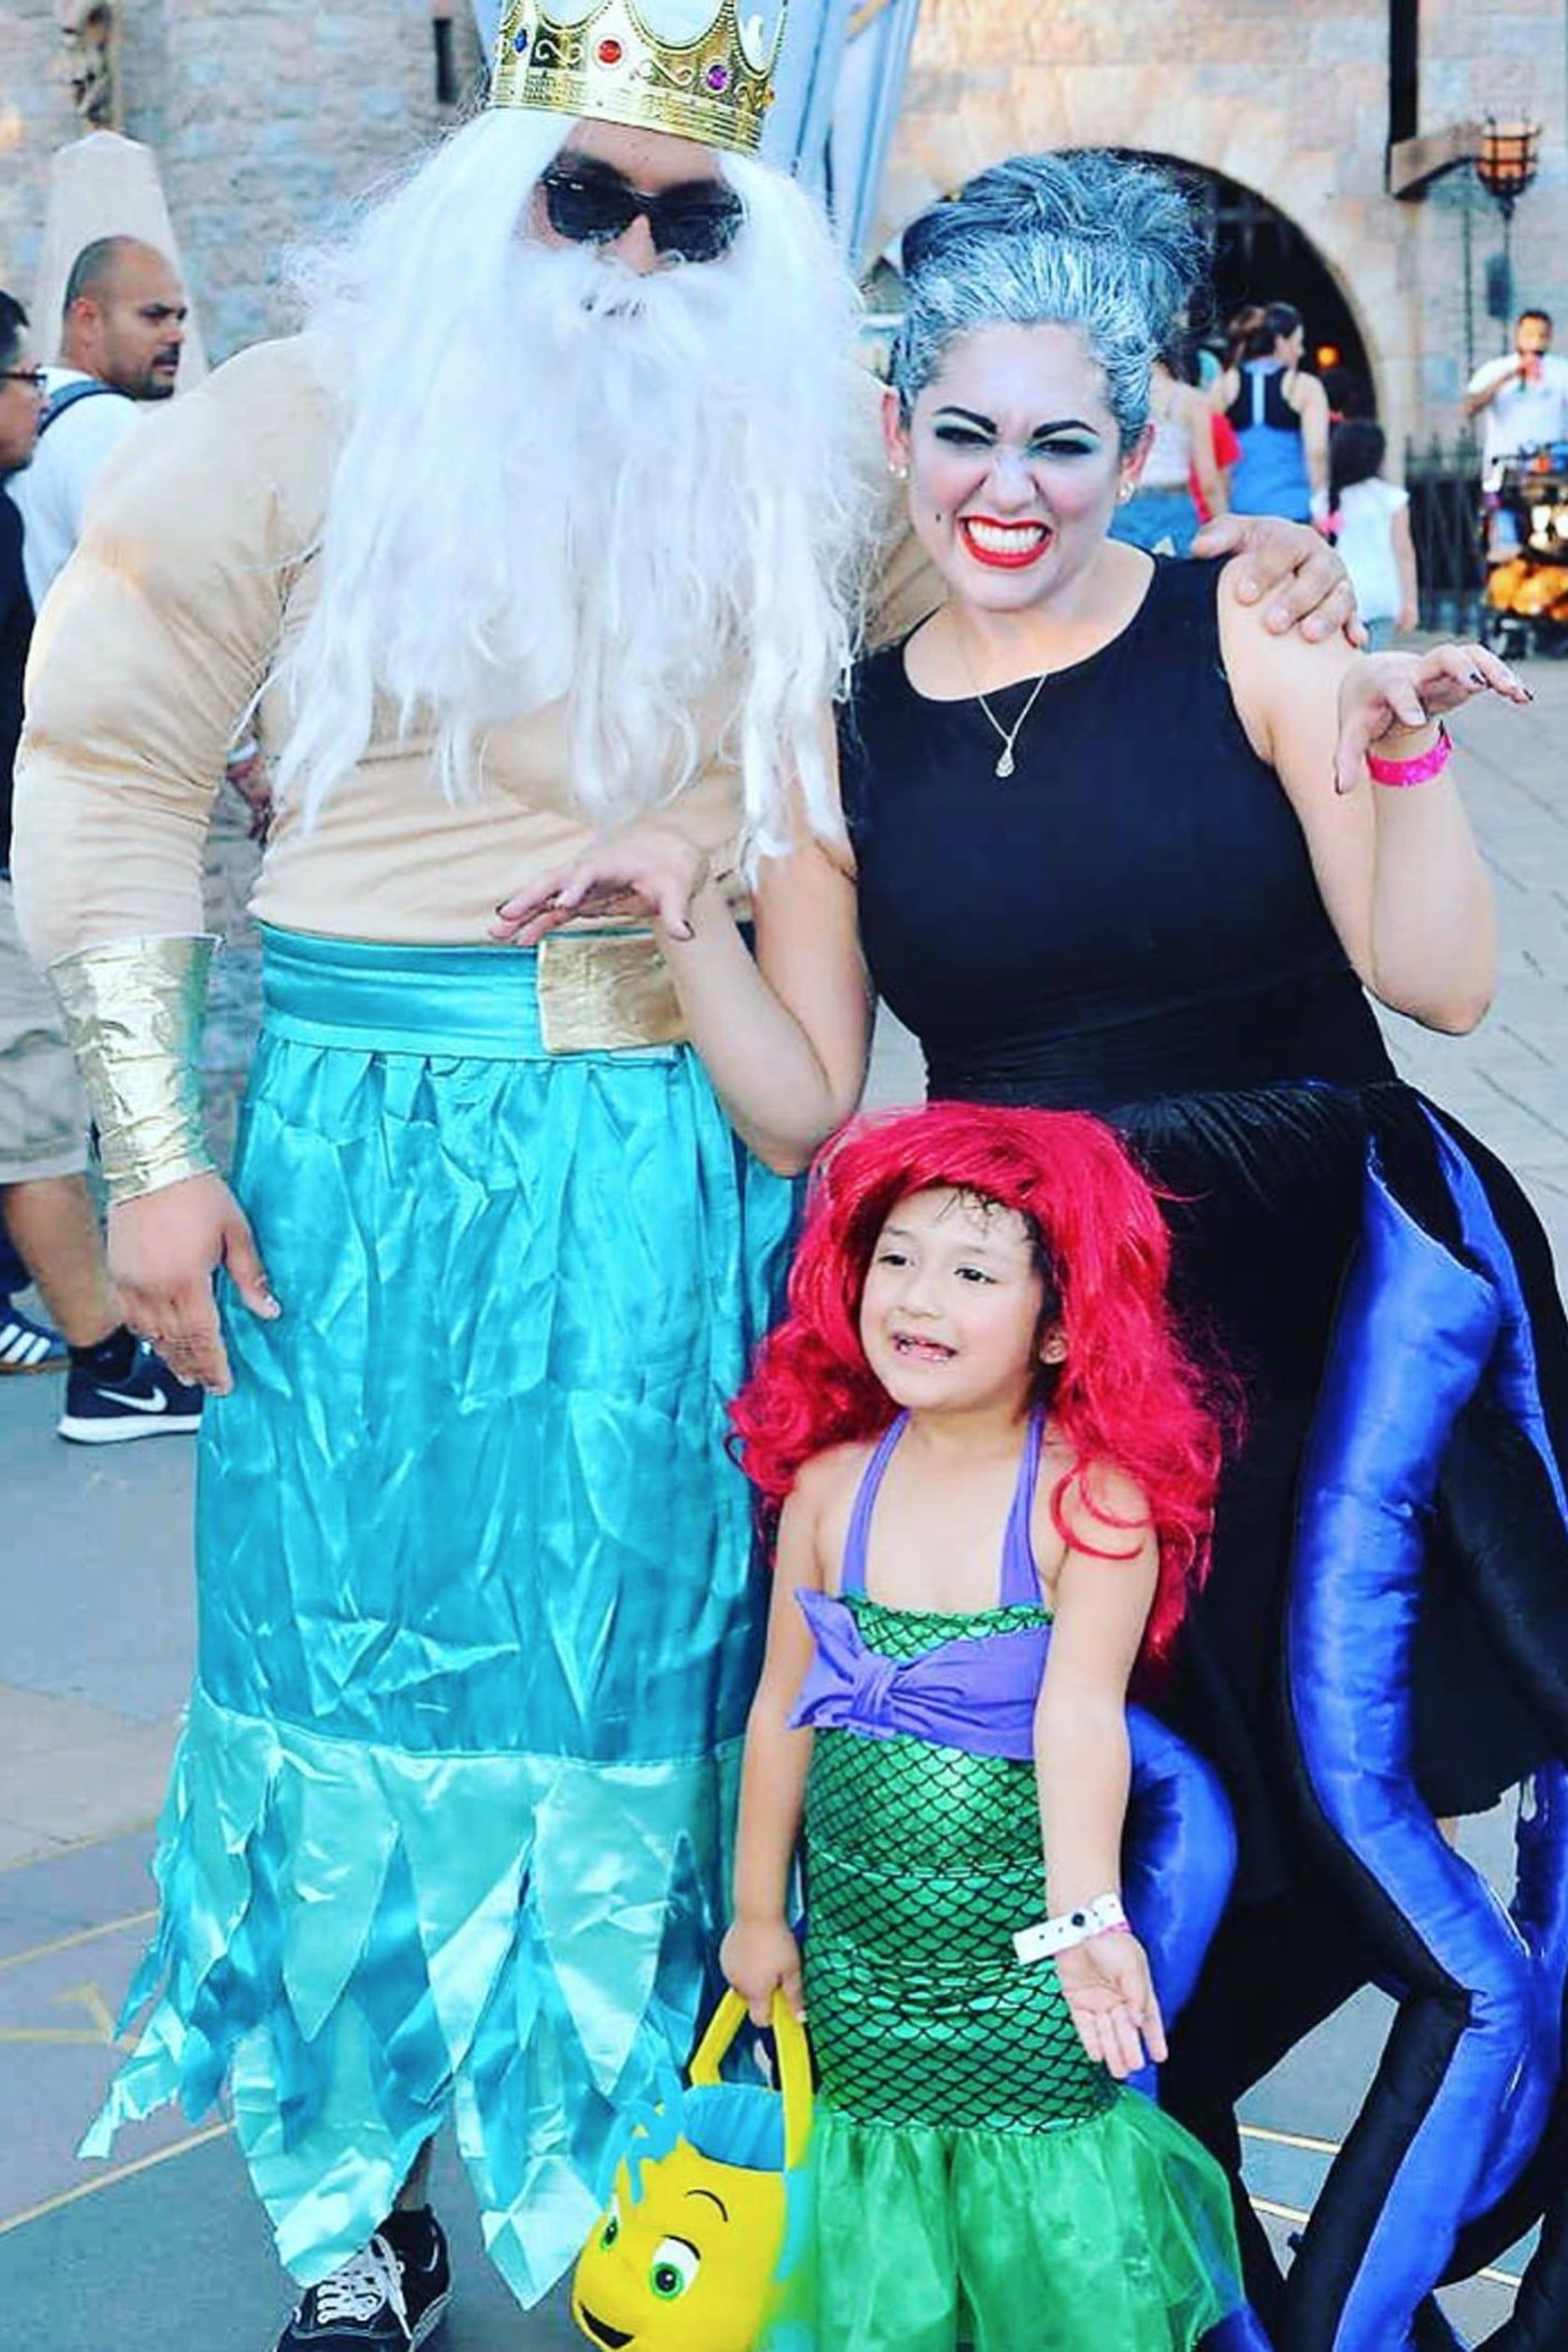 Halloween Costume Ideas For Family Of 3.Calling All Families Of 3 We Have The 41 Halloween Costume Ideas